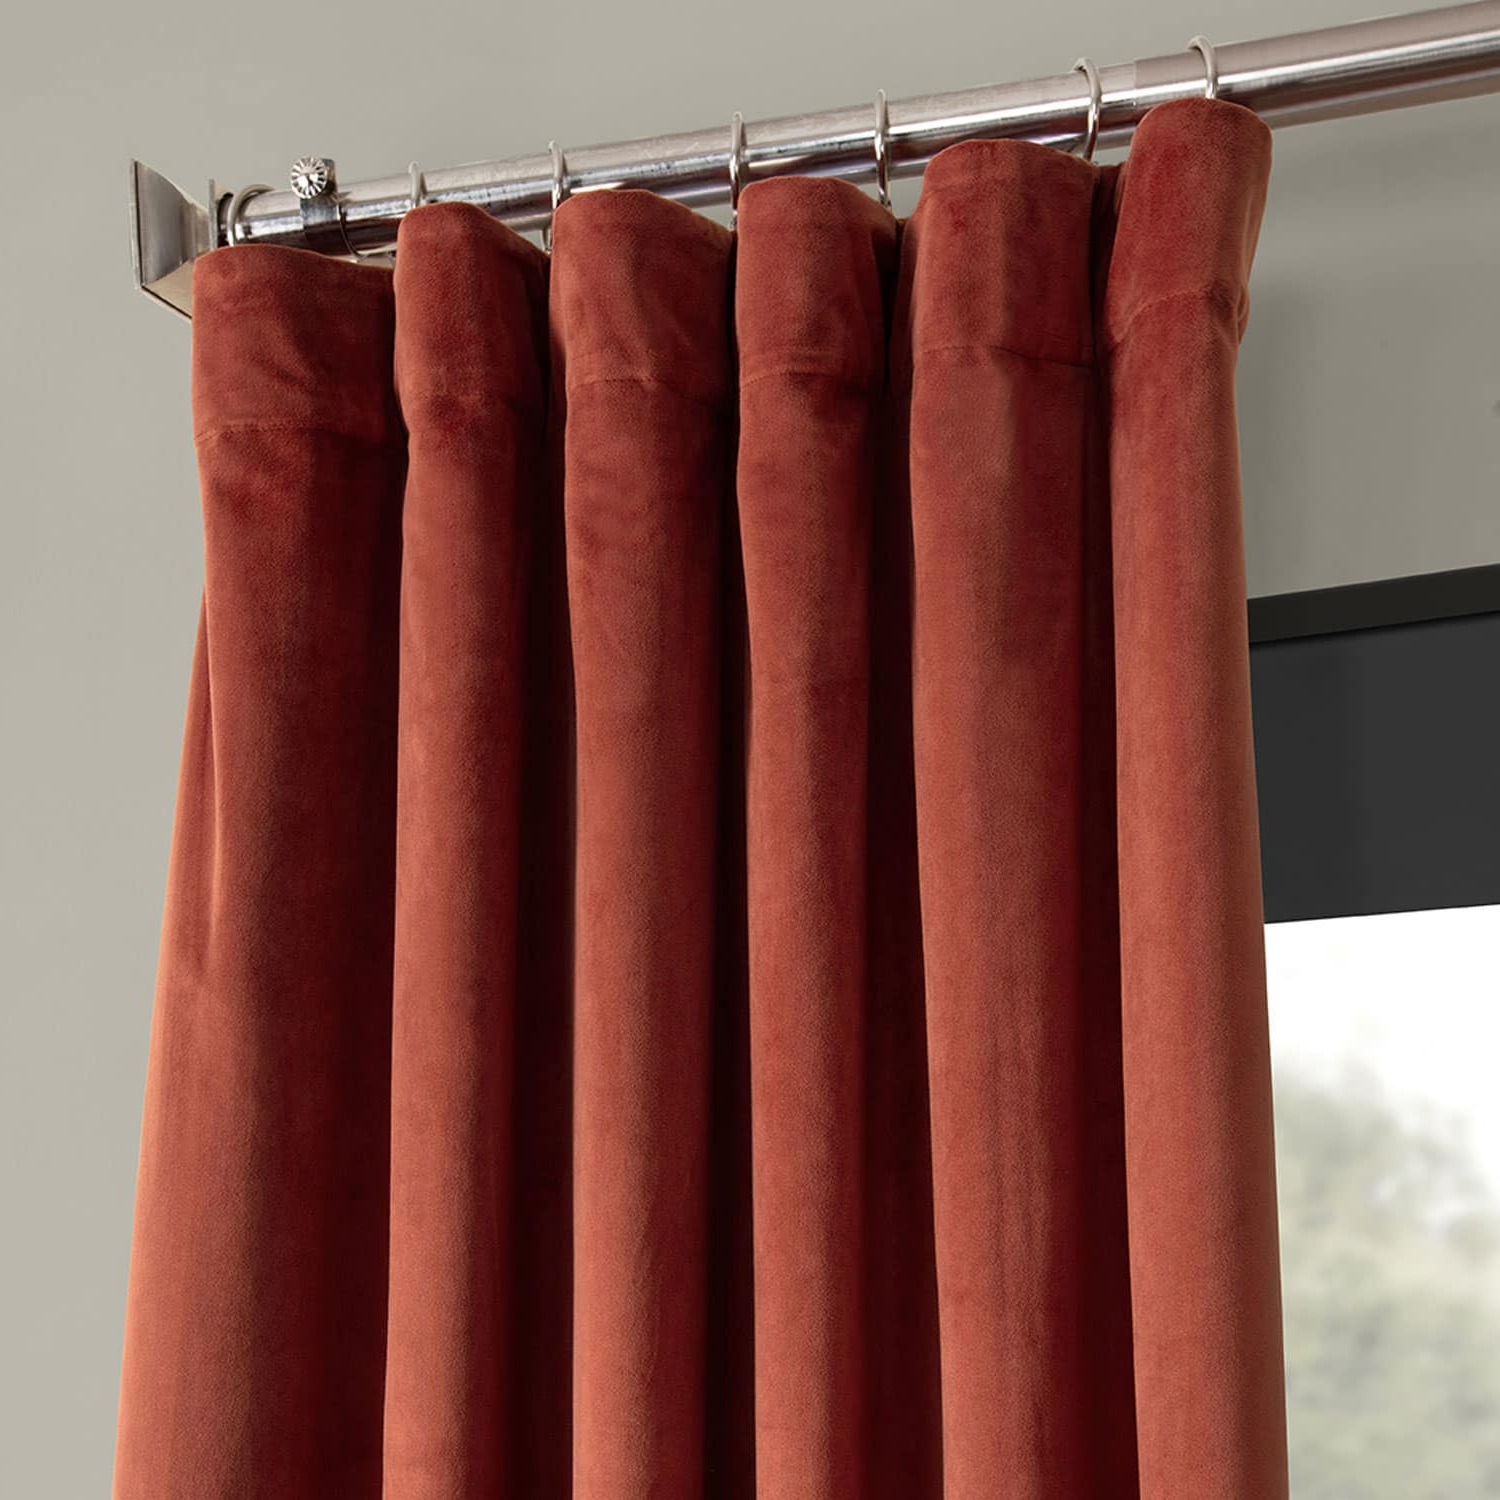 Signature Blackout Velvet Curtains Pertaining To Favorite Details About Signature Blackout Velvet Curtains (sold Per Panel) (View 10 of 20)